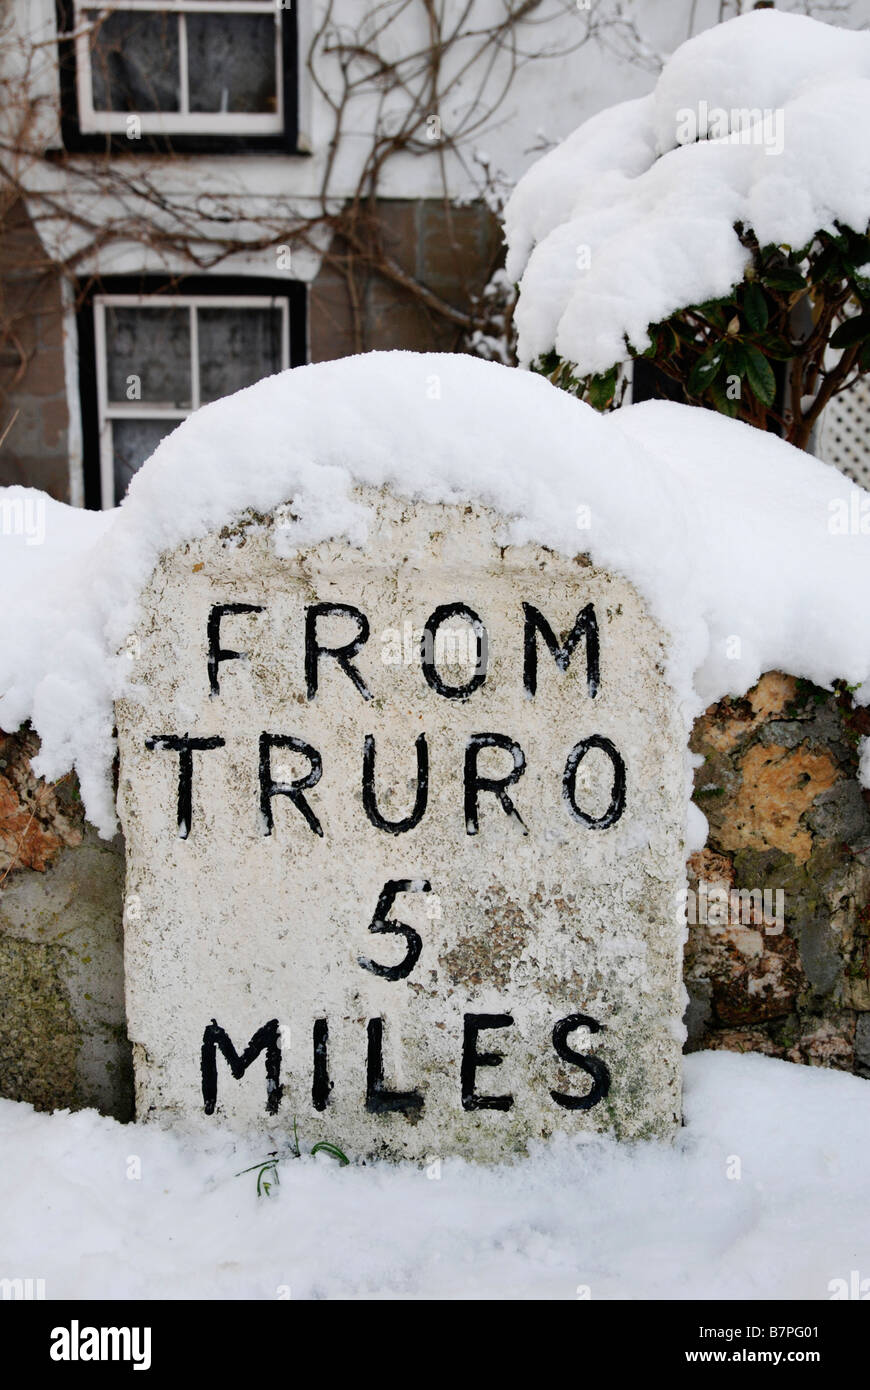 a snow covered milestone,showing 5 miles to truro,cornwall,uk - Stock Image